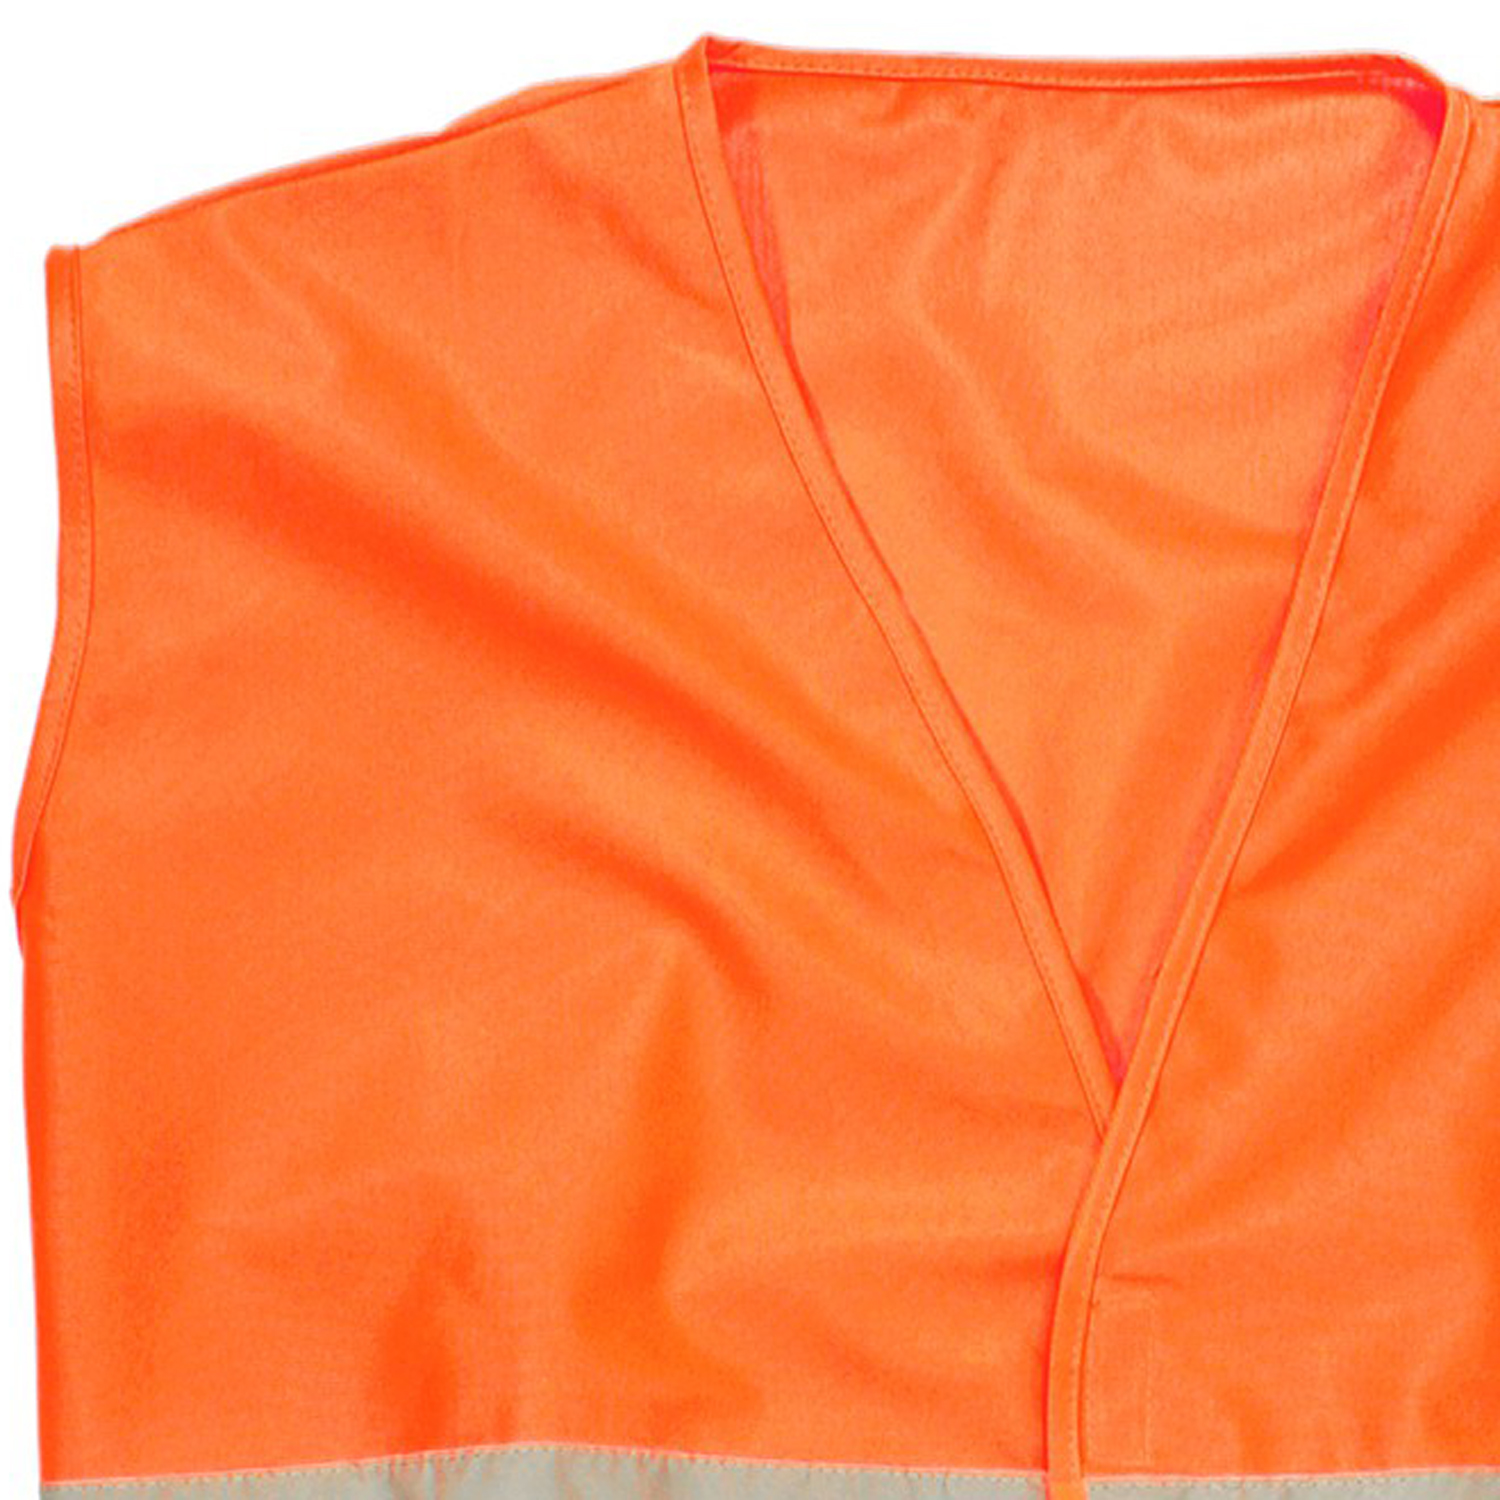 Detail Image to Warning vest in orange by Marc&Mark in oversizes up to 10XL